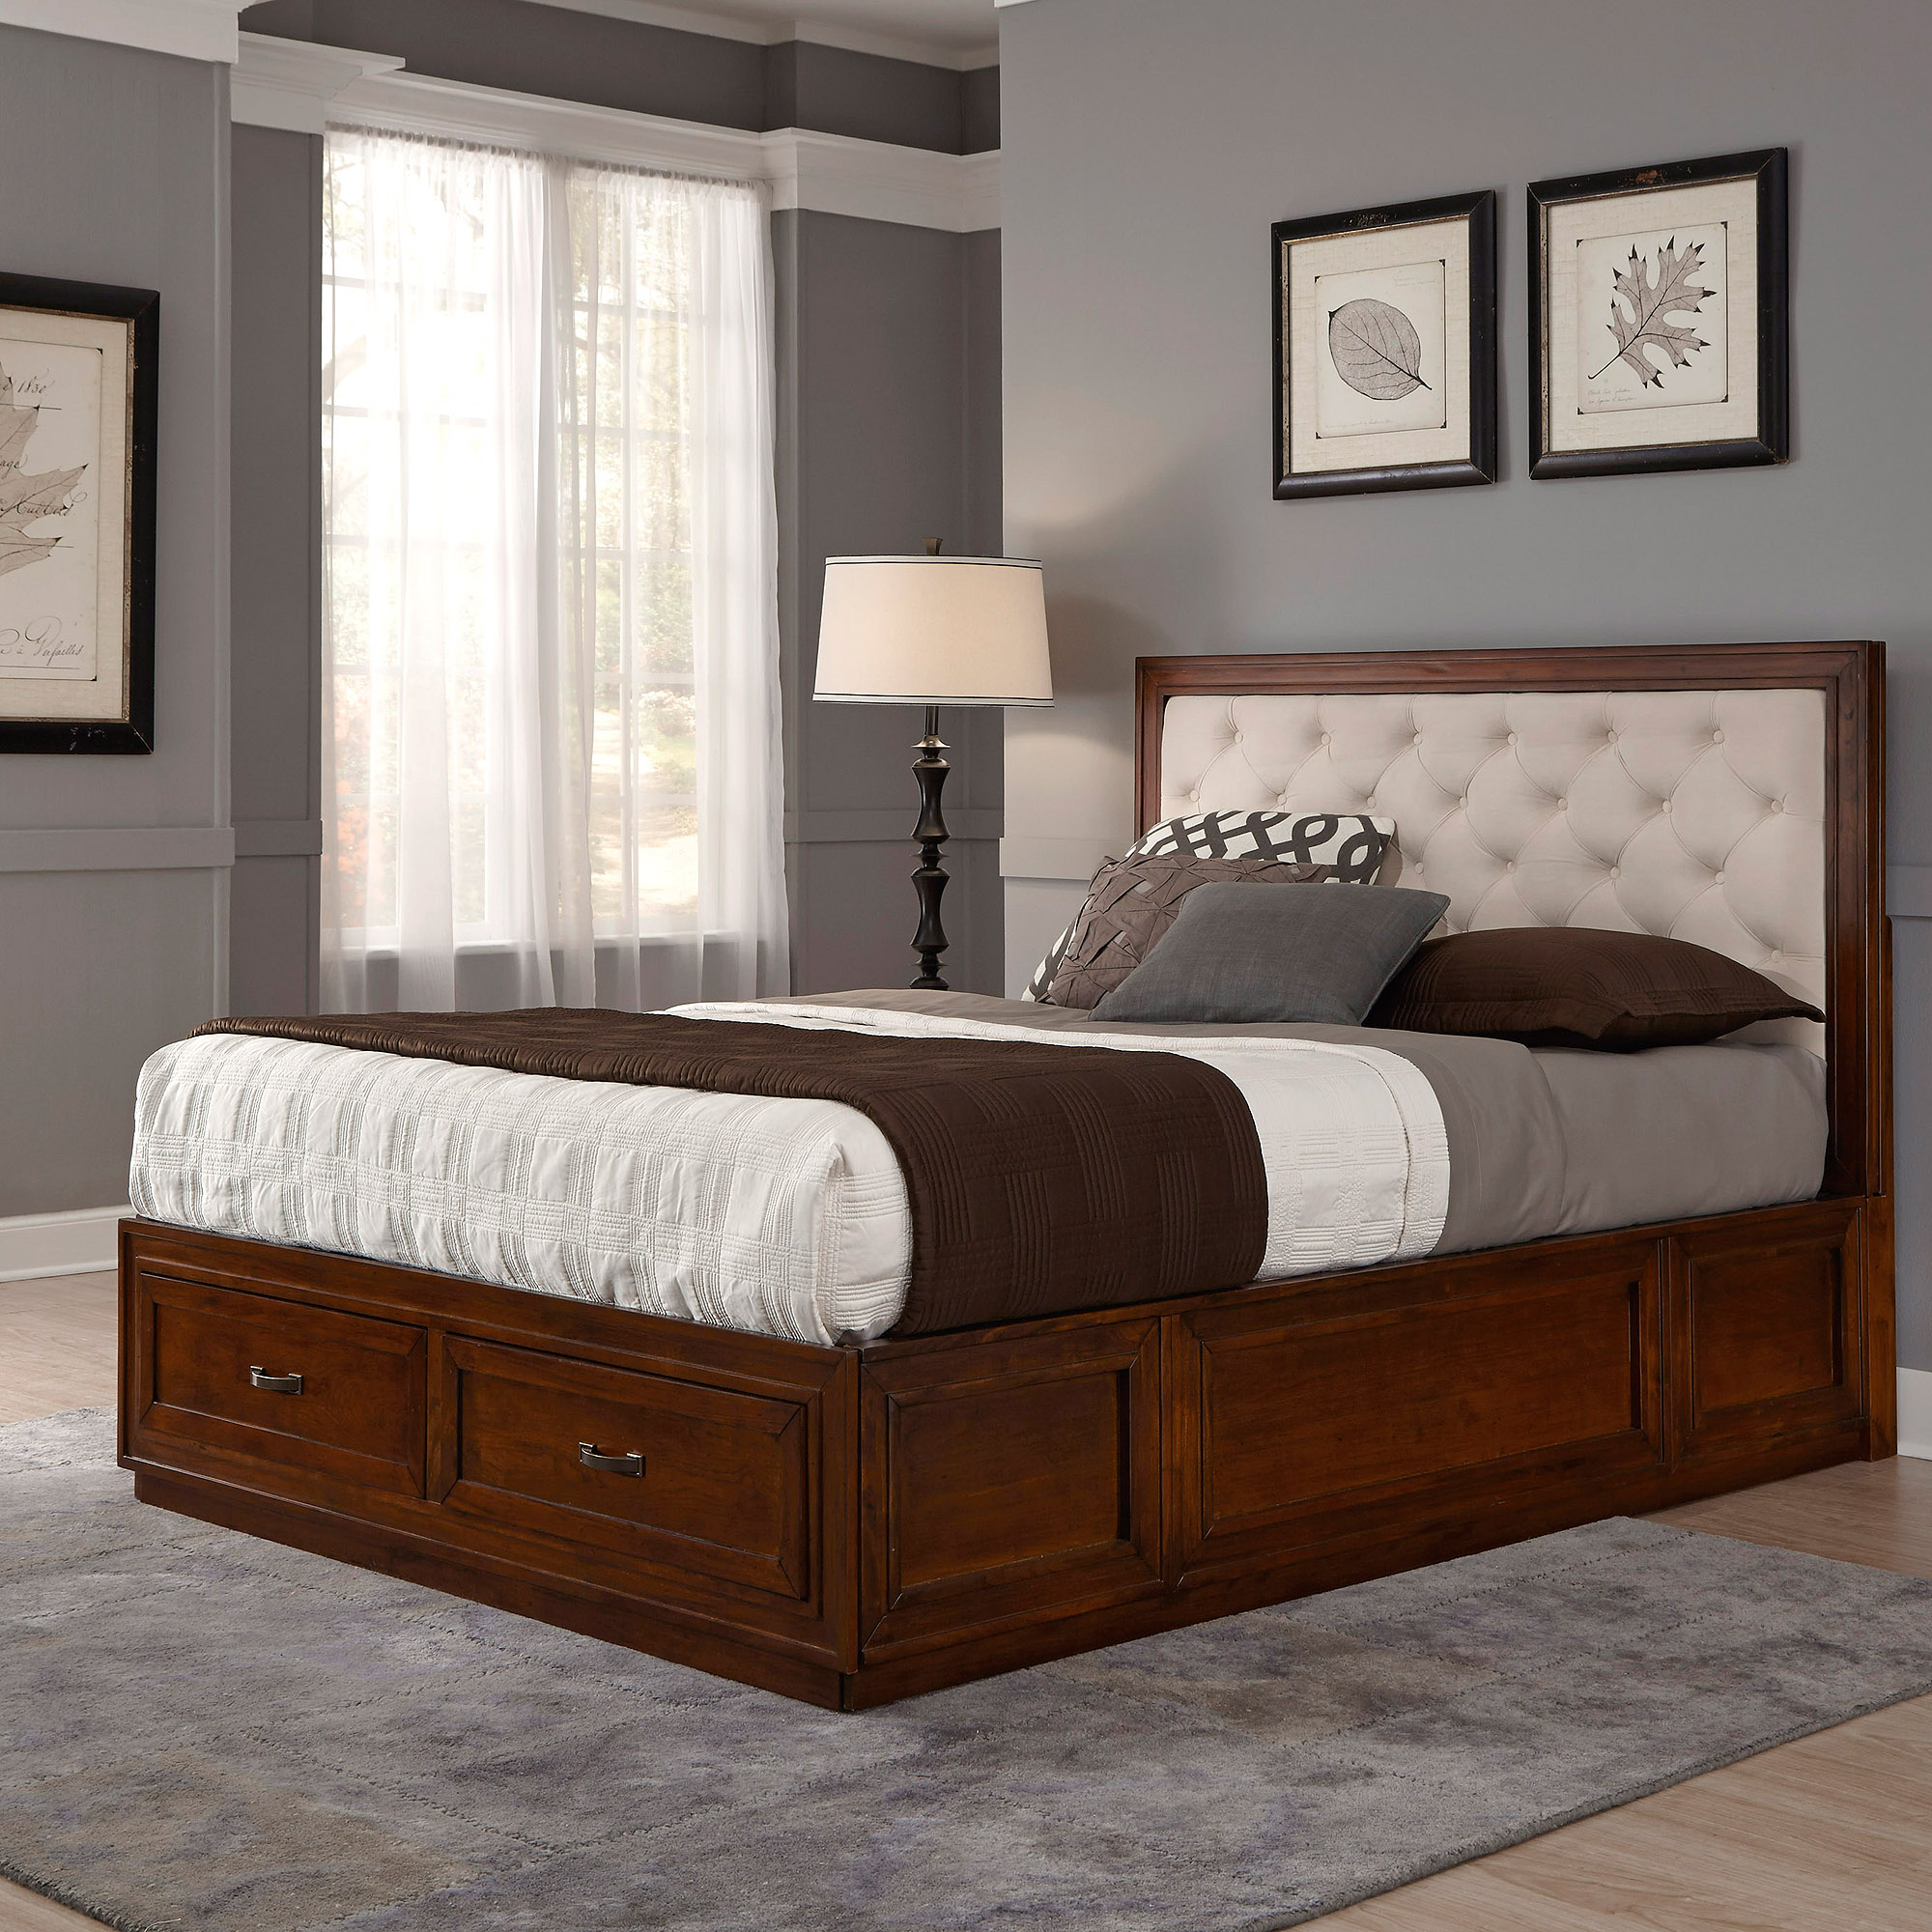 Duet Queen Tufted Diamond Panel Bed, Oyster Microfiber